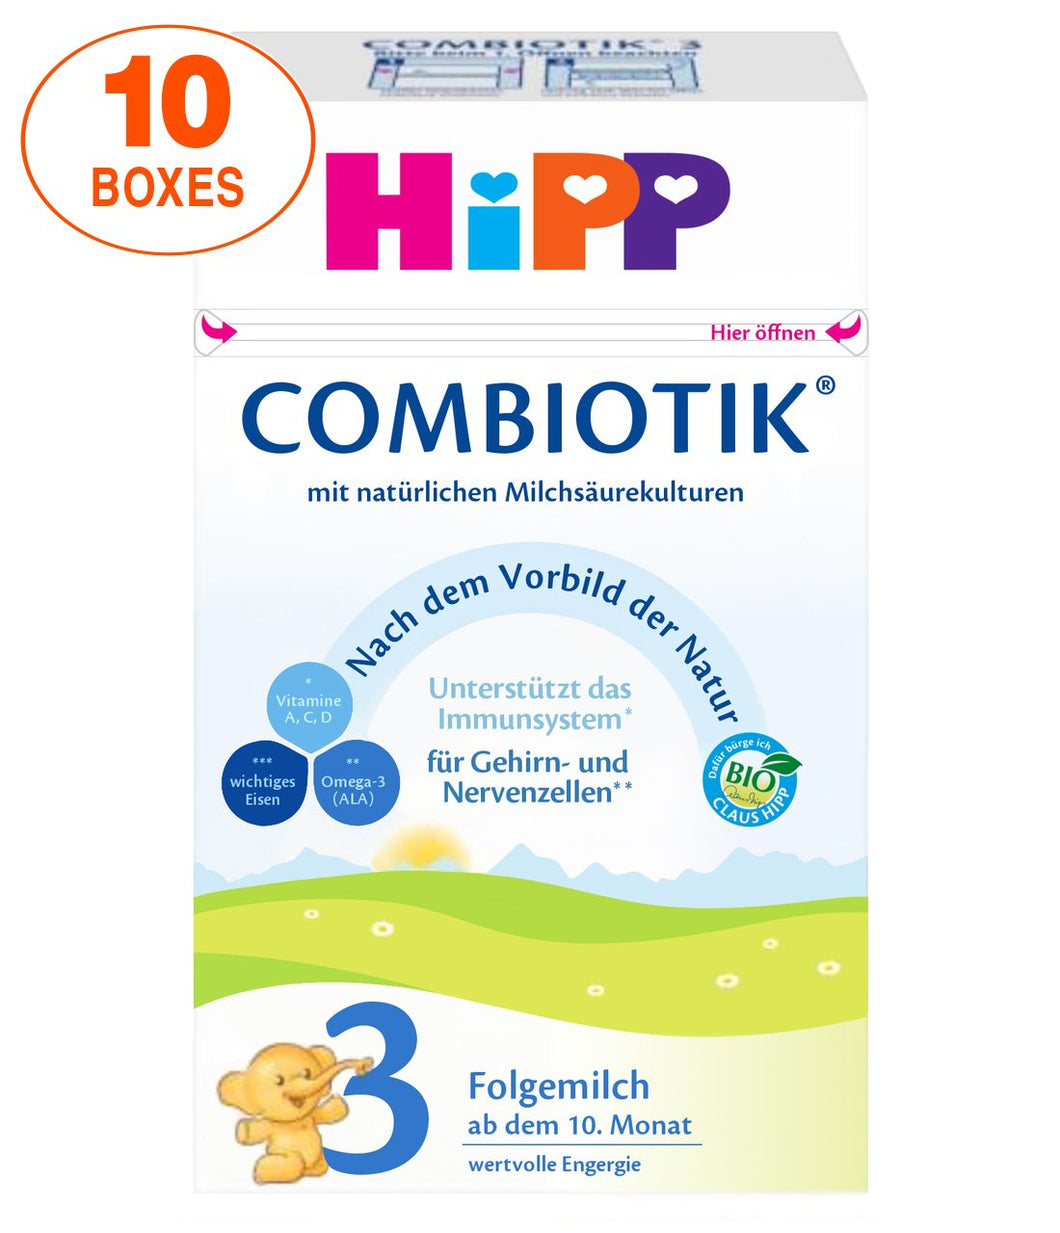 HiPP Stage 3 Organic (Bio) Combiotic Infant Milk Formula (600g) - German Version 10 BOXES